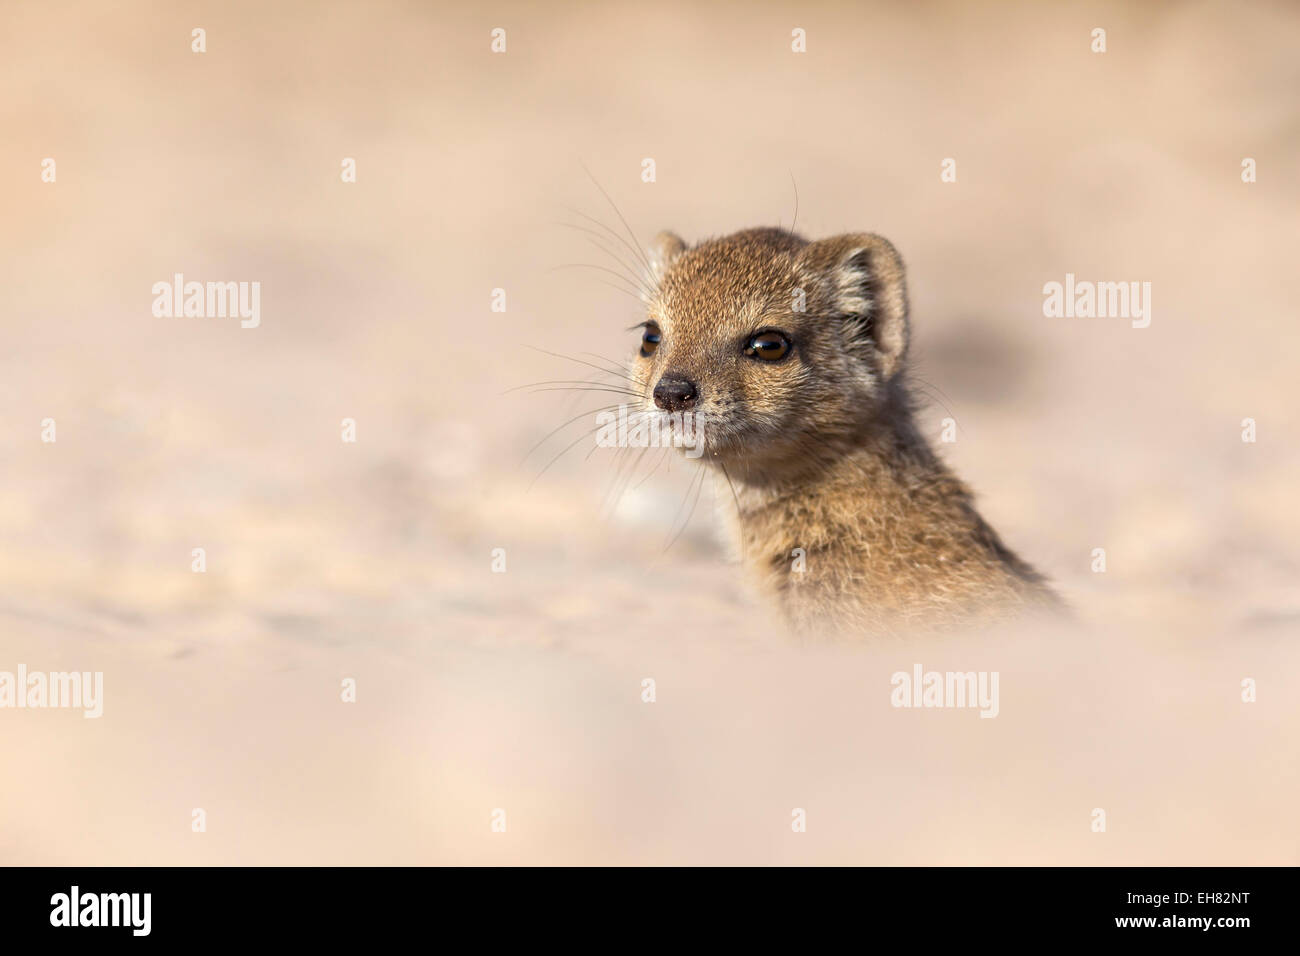 Yellow mongoose baby (Cynictis penicillata), Kgalagadi Transfrontier Park, Northern Cape, South Africa, Africa - Stock Image